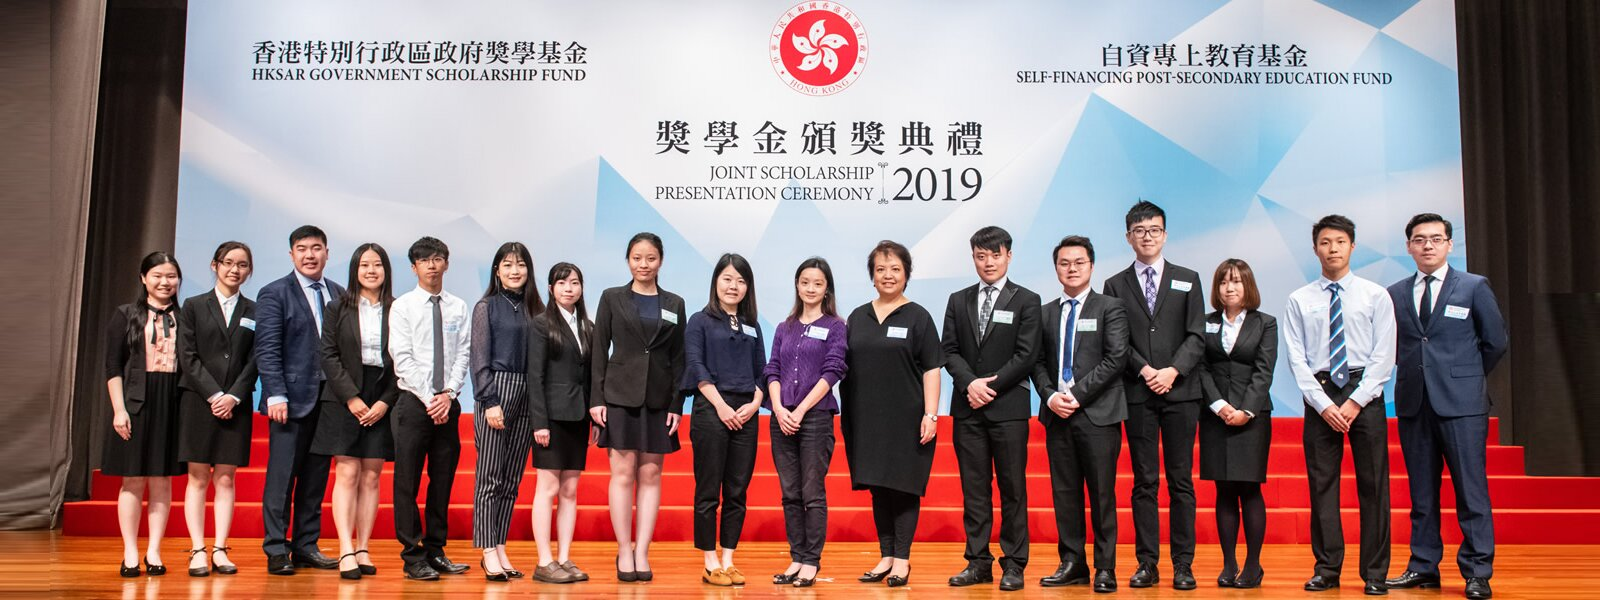 280 EdUHK students receive government scholarships or awards